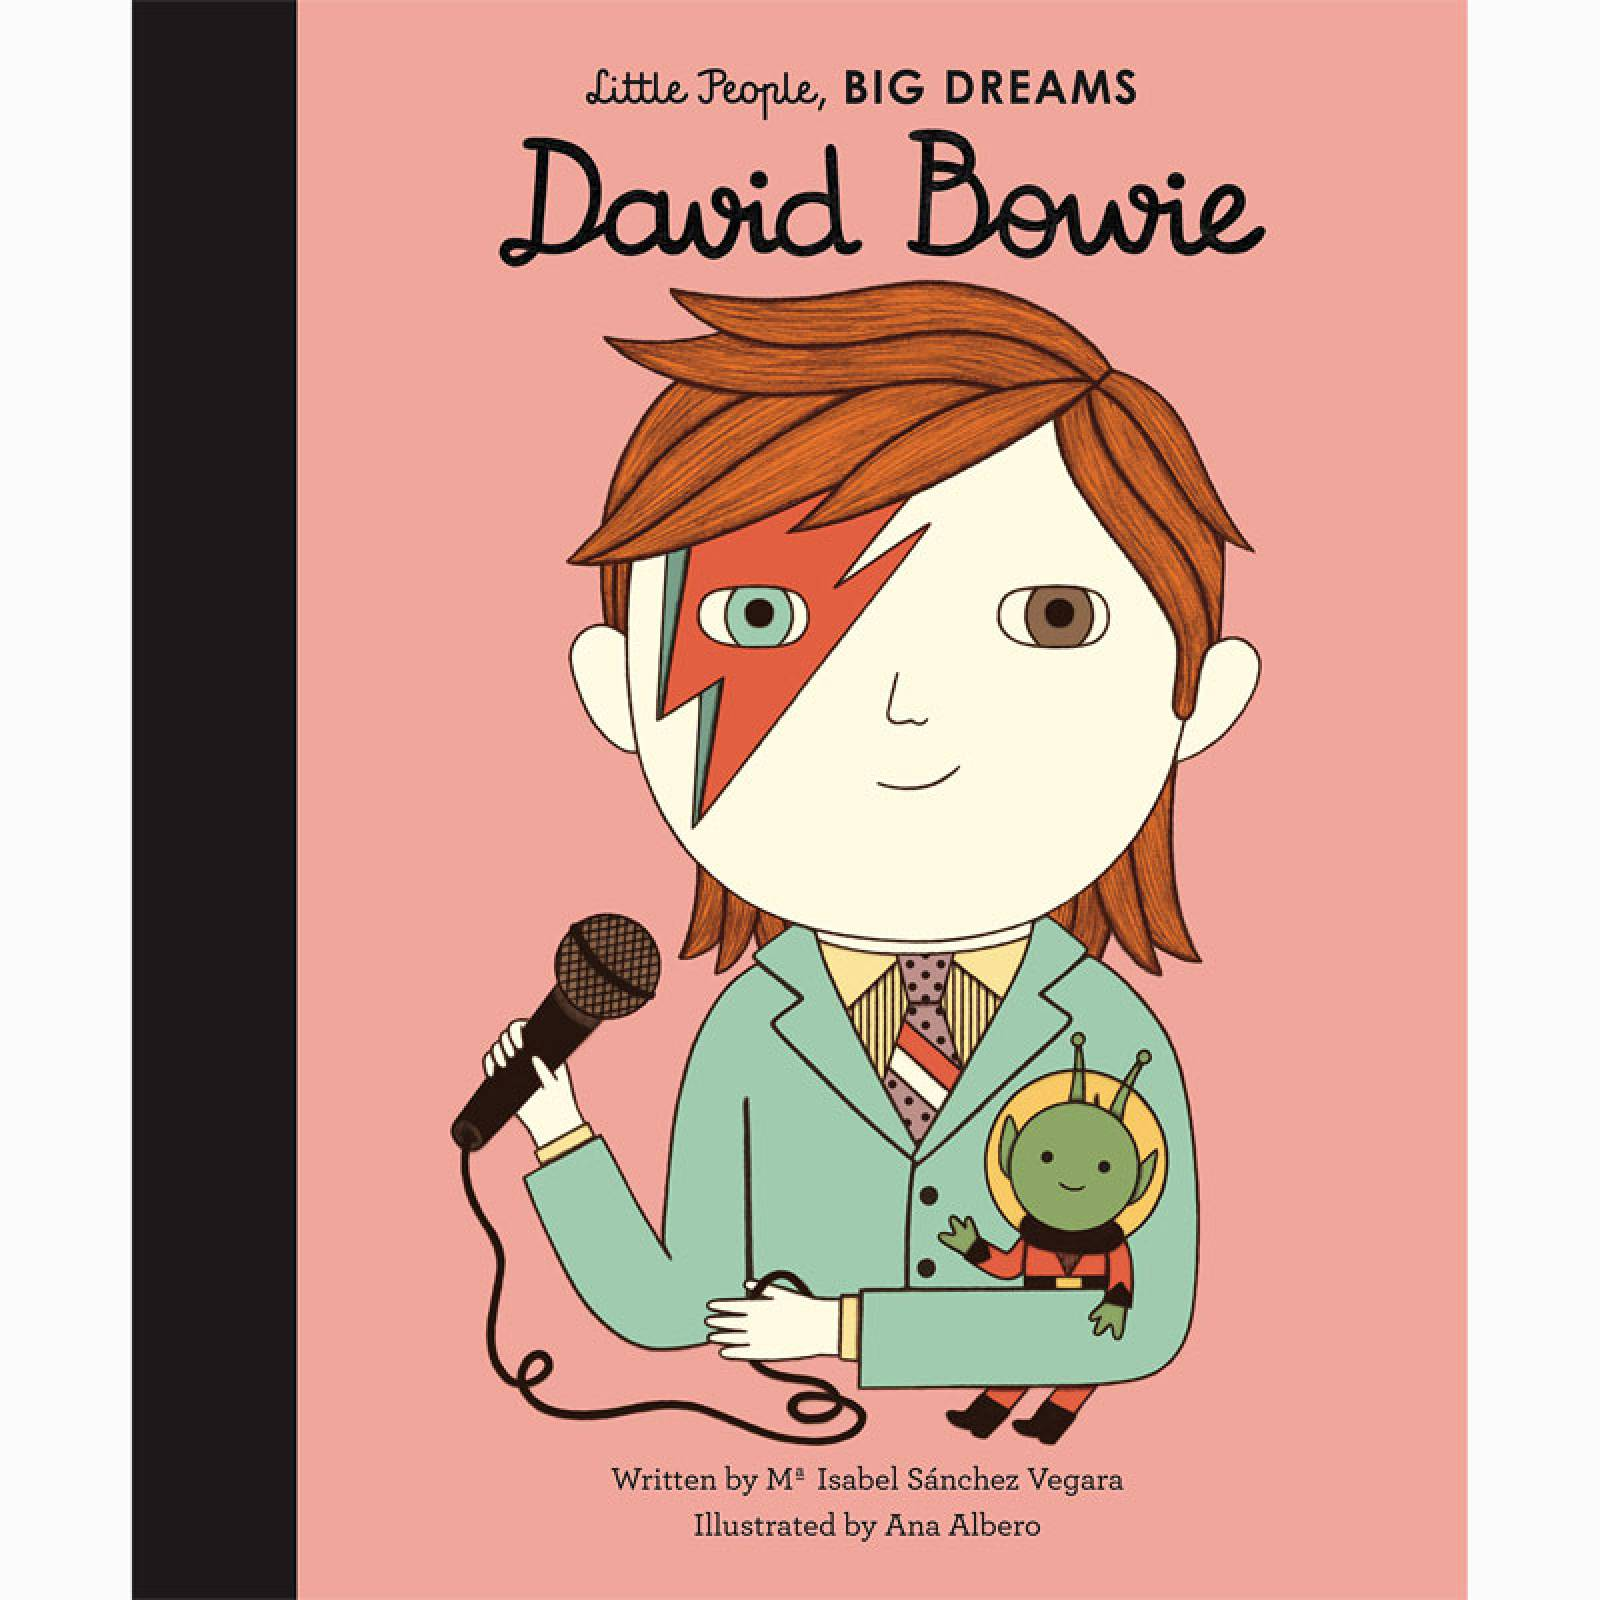 David Bowie: Little People Big Dreams - Hardback Book thumbnails